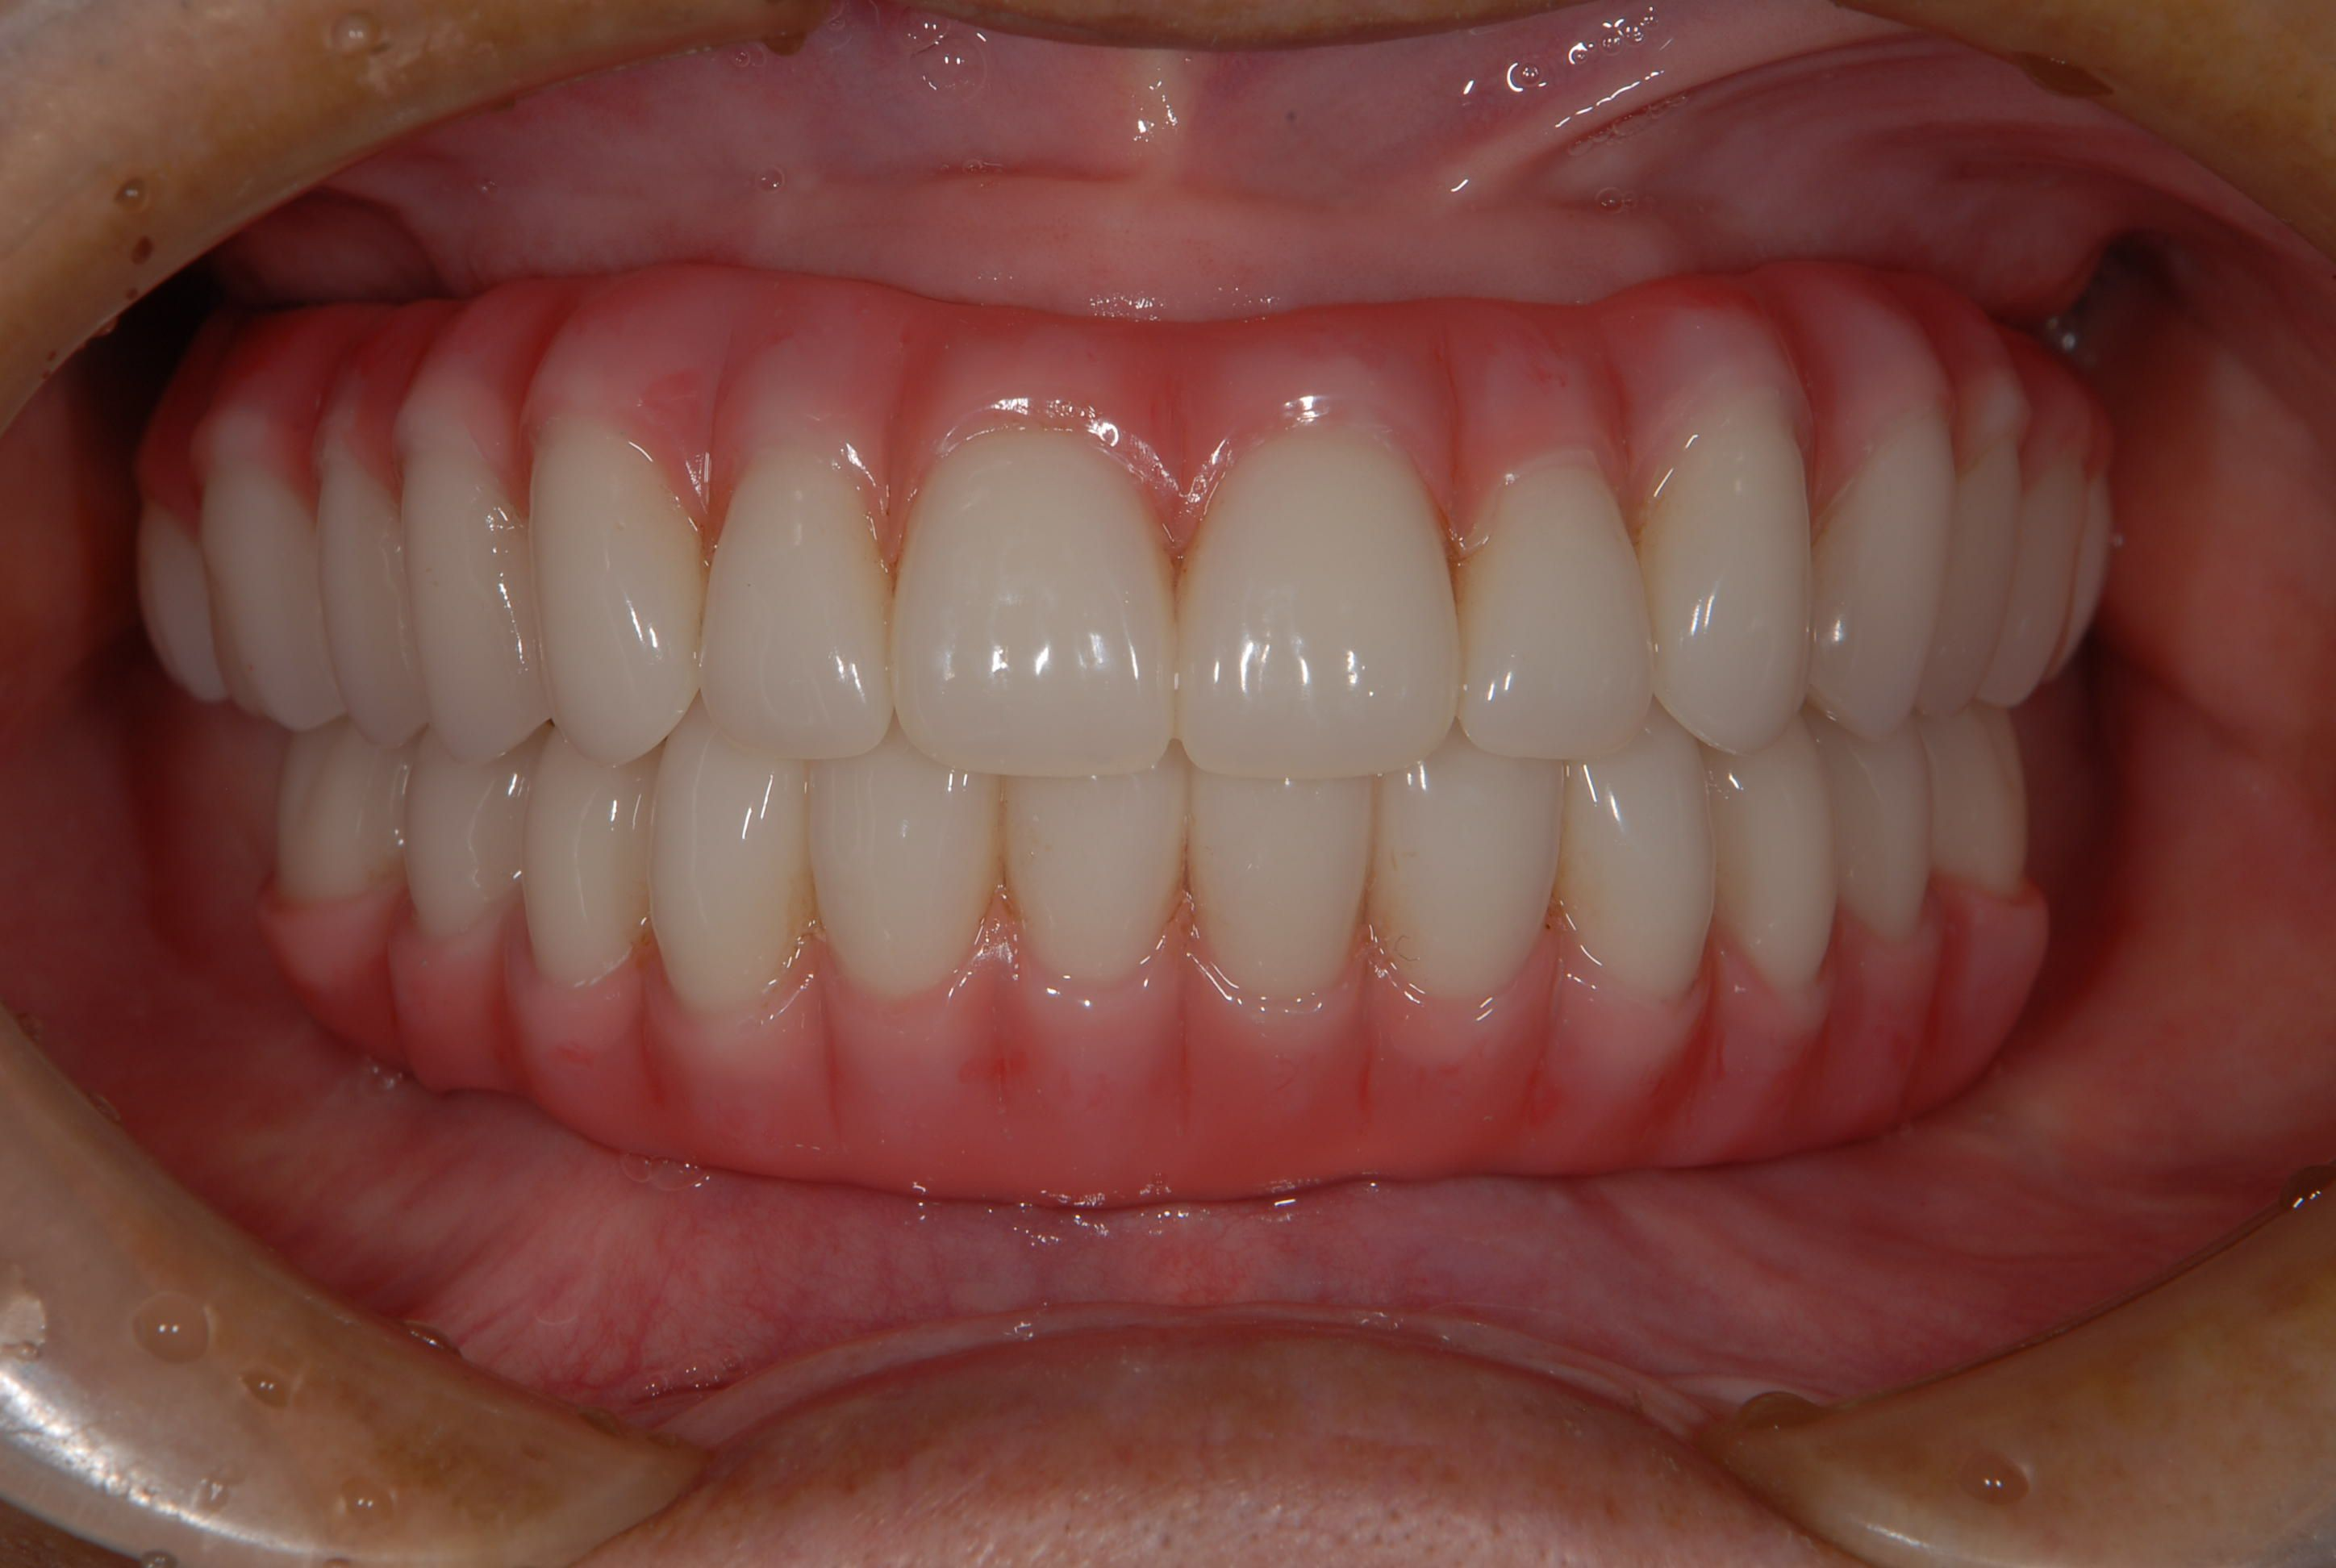 About Implant-Supported Overdenture - Cost Procedure ...